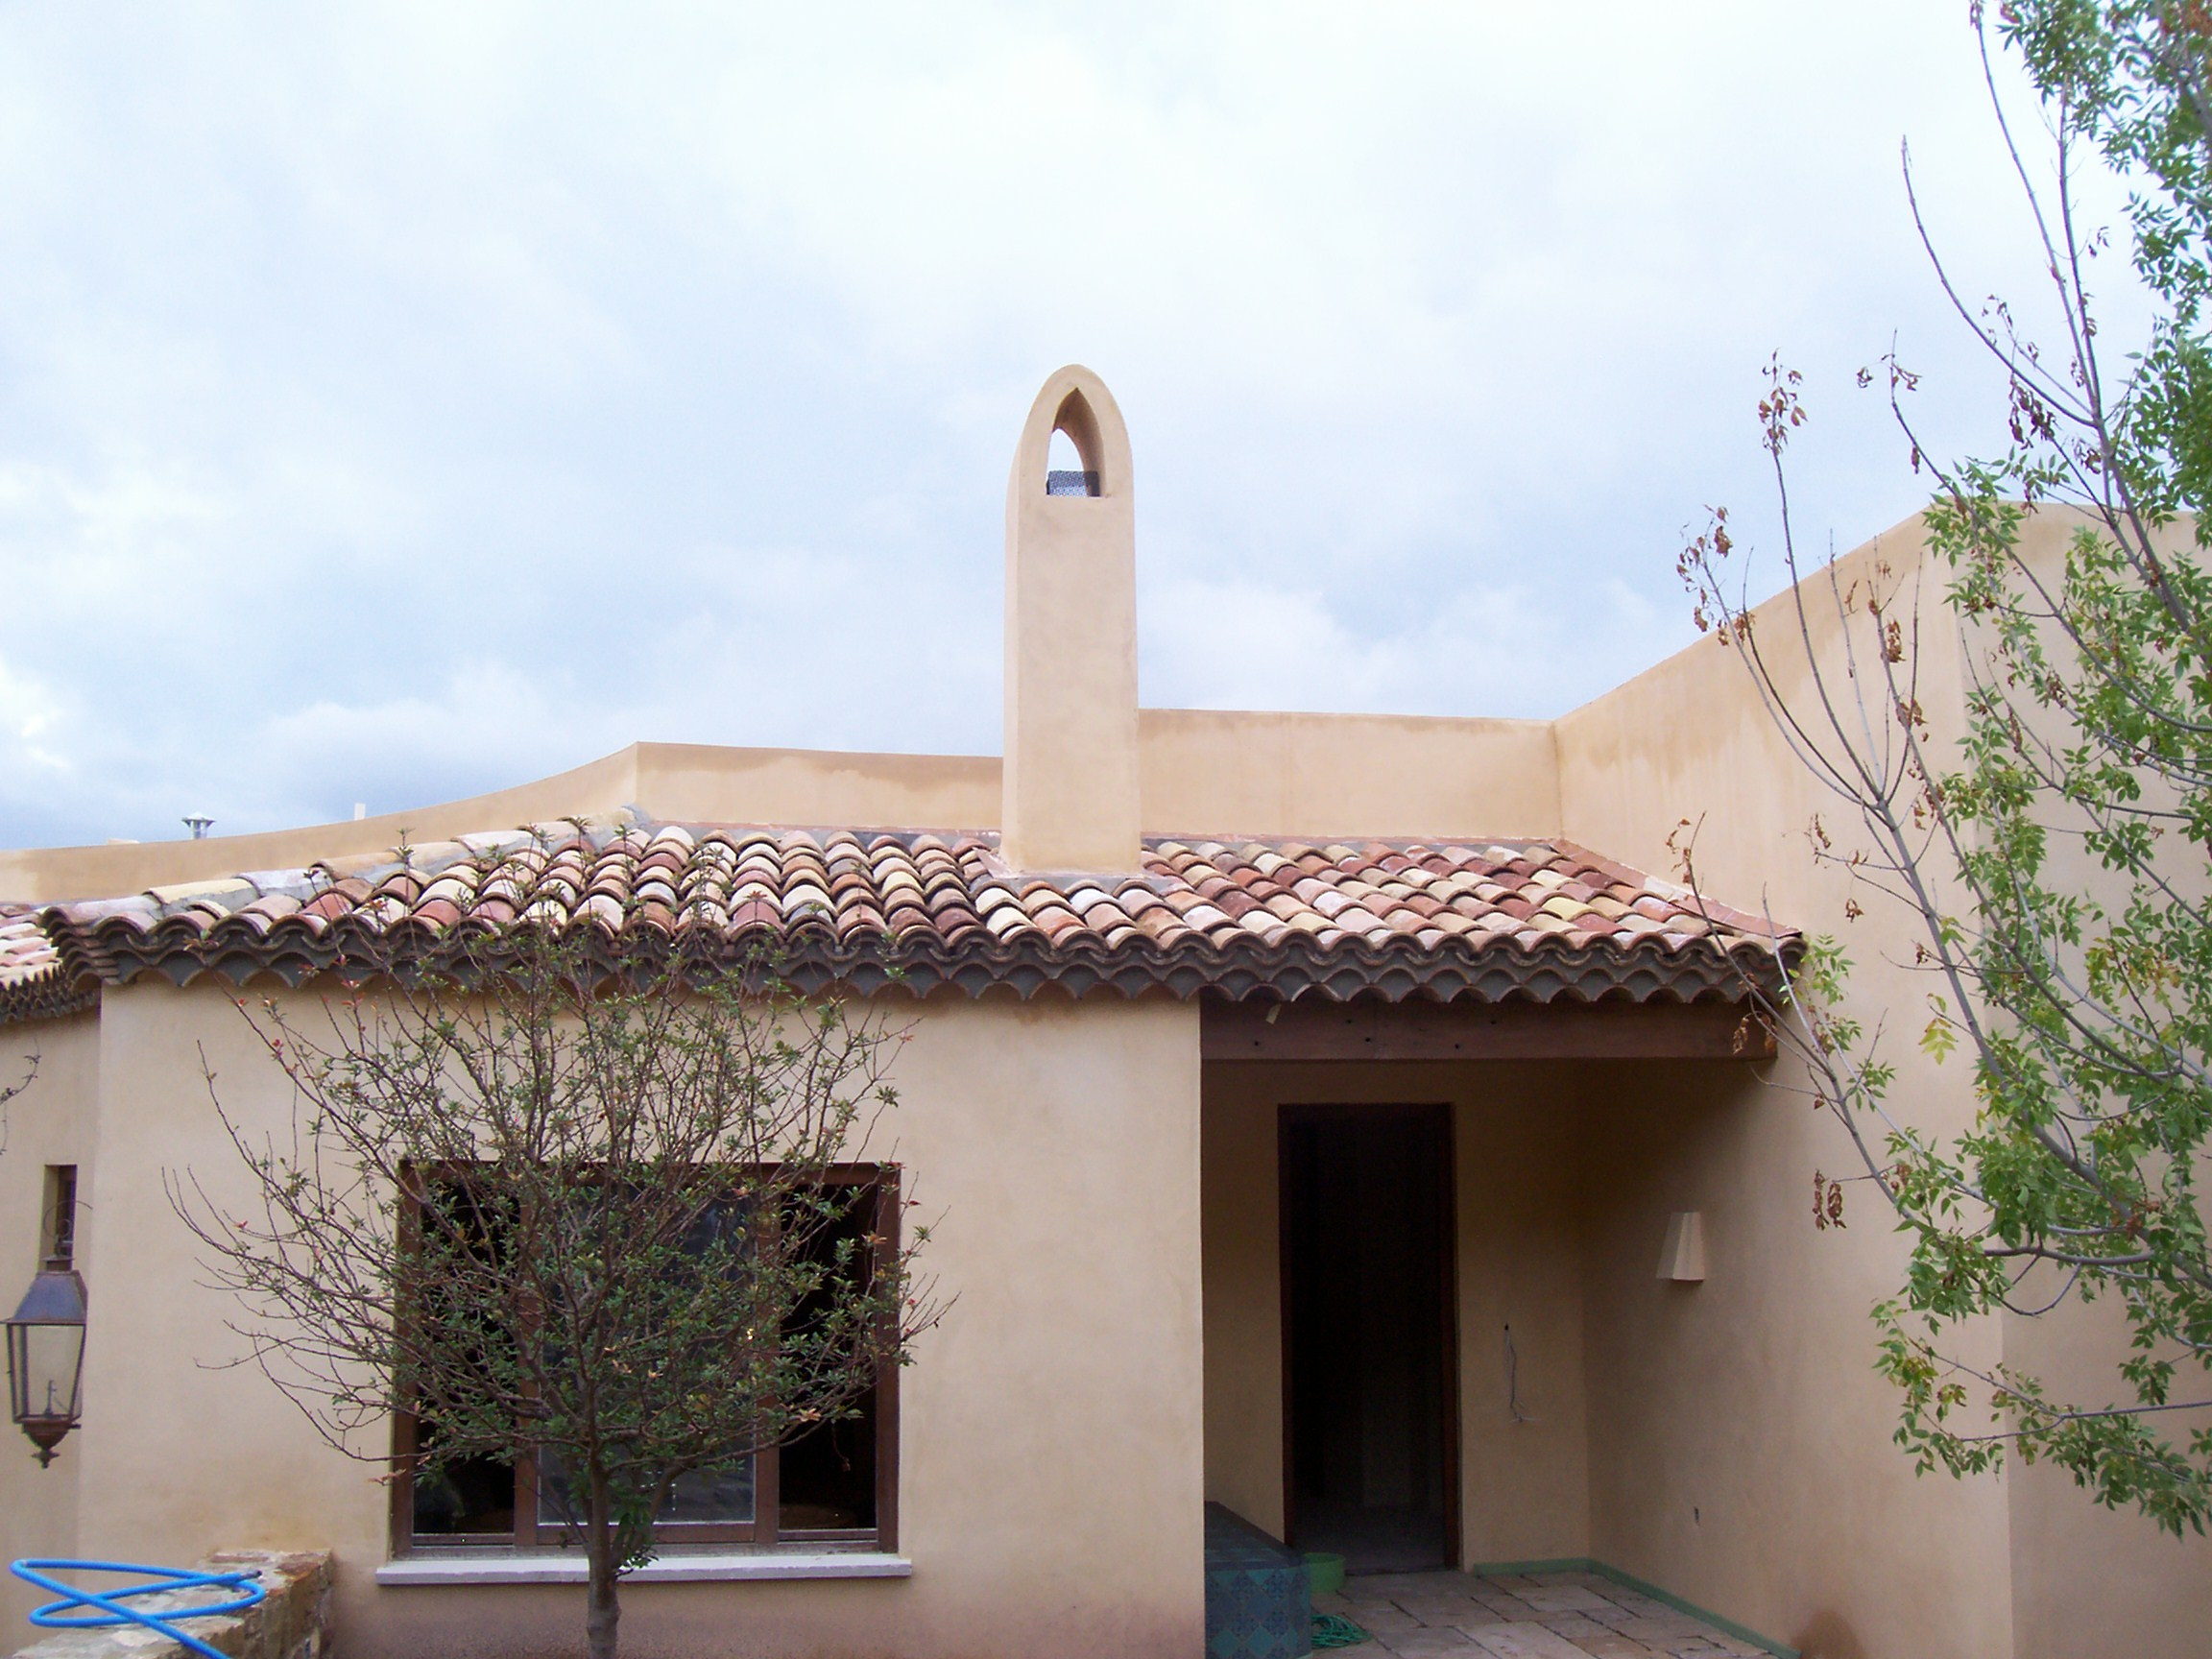 spanish style home with plaster exterior